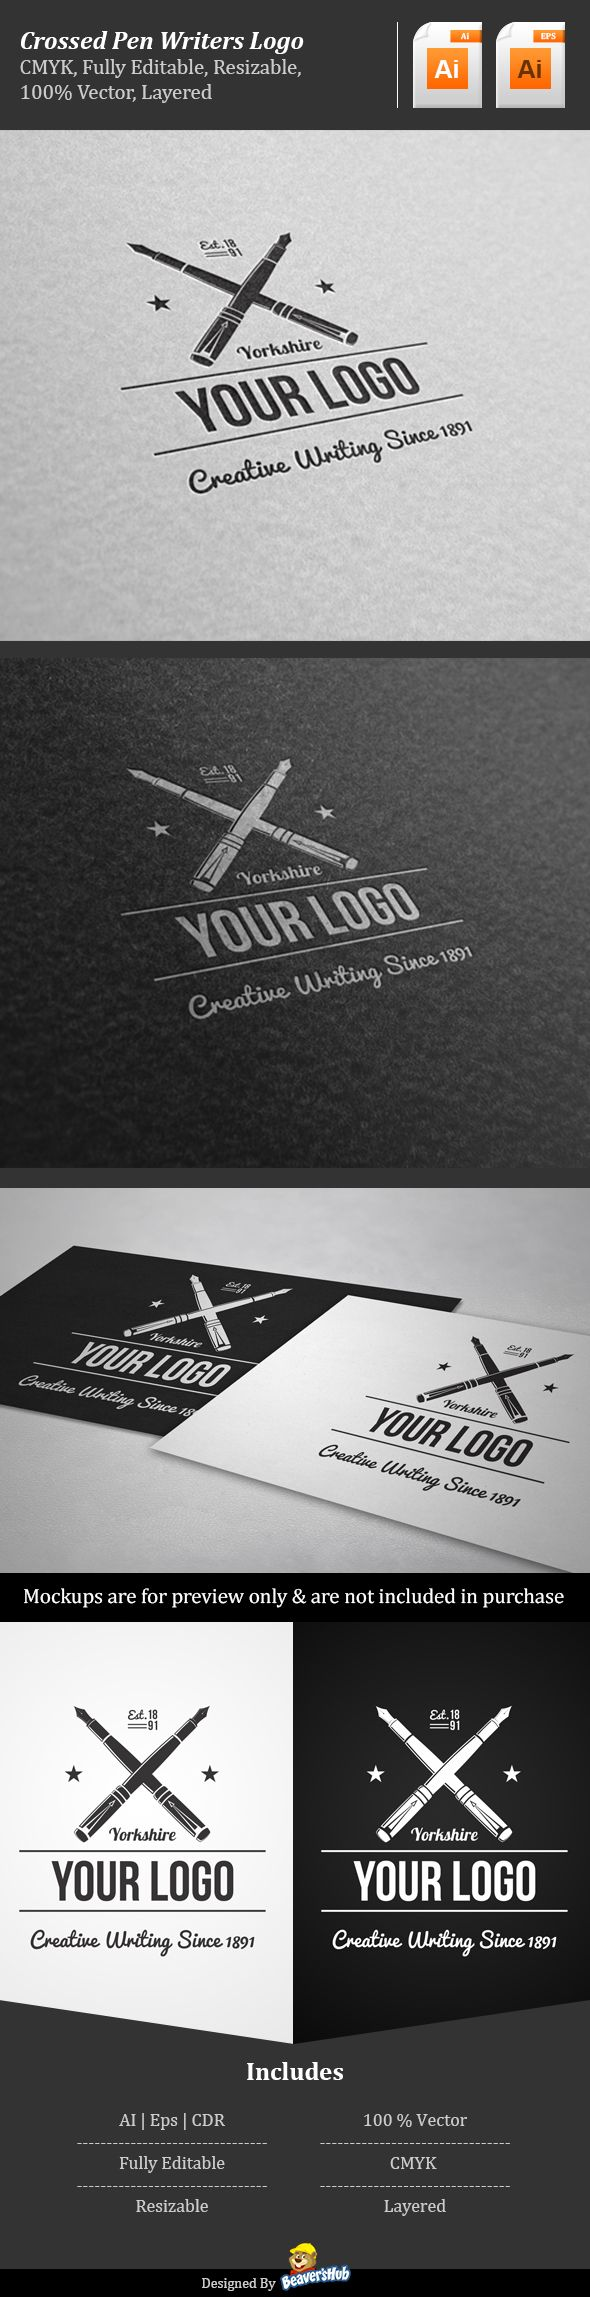 44 best logos copys images on pinterest colours projects and buy crossed pen writers logo by artychristina on graphicriver crossed pen writers logo the cross formed by the two pens signifies heritage and lifts the magicingreecefo Image collections